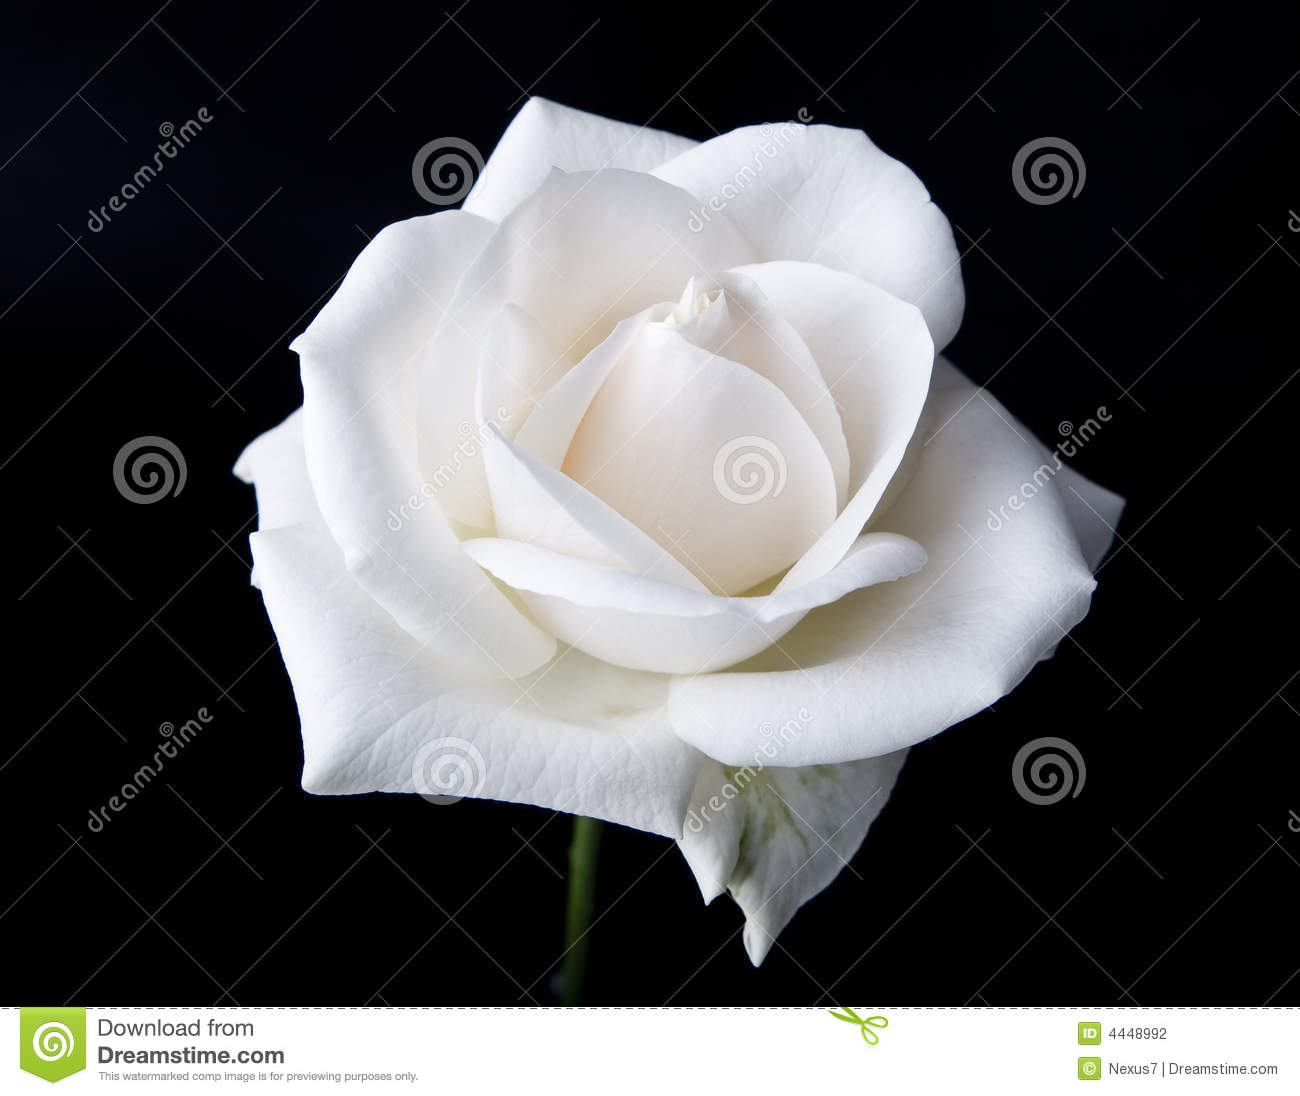 eleletsitz: Single White Rose Black Background Images